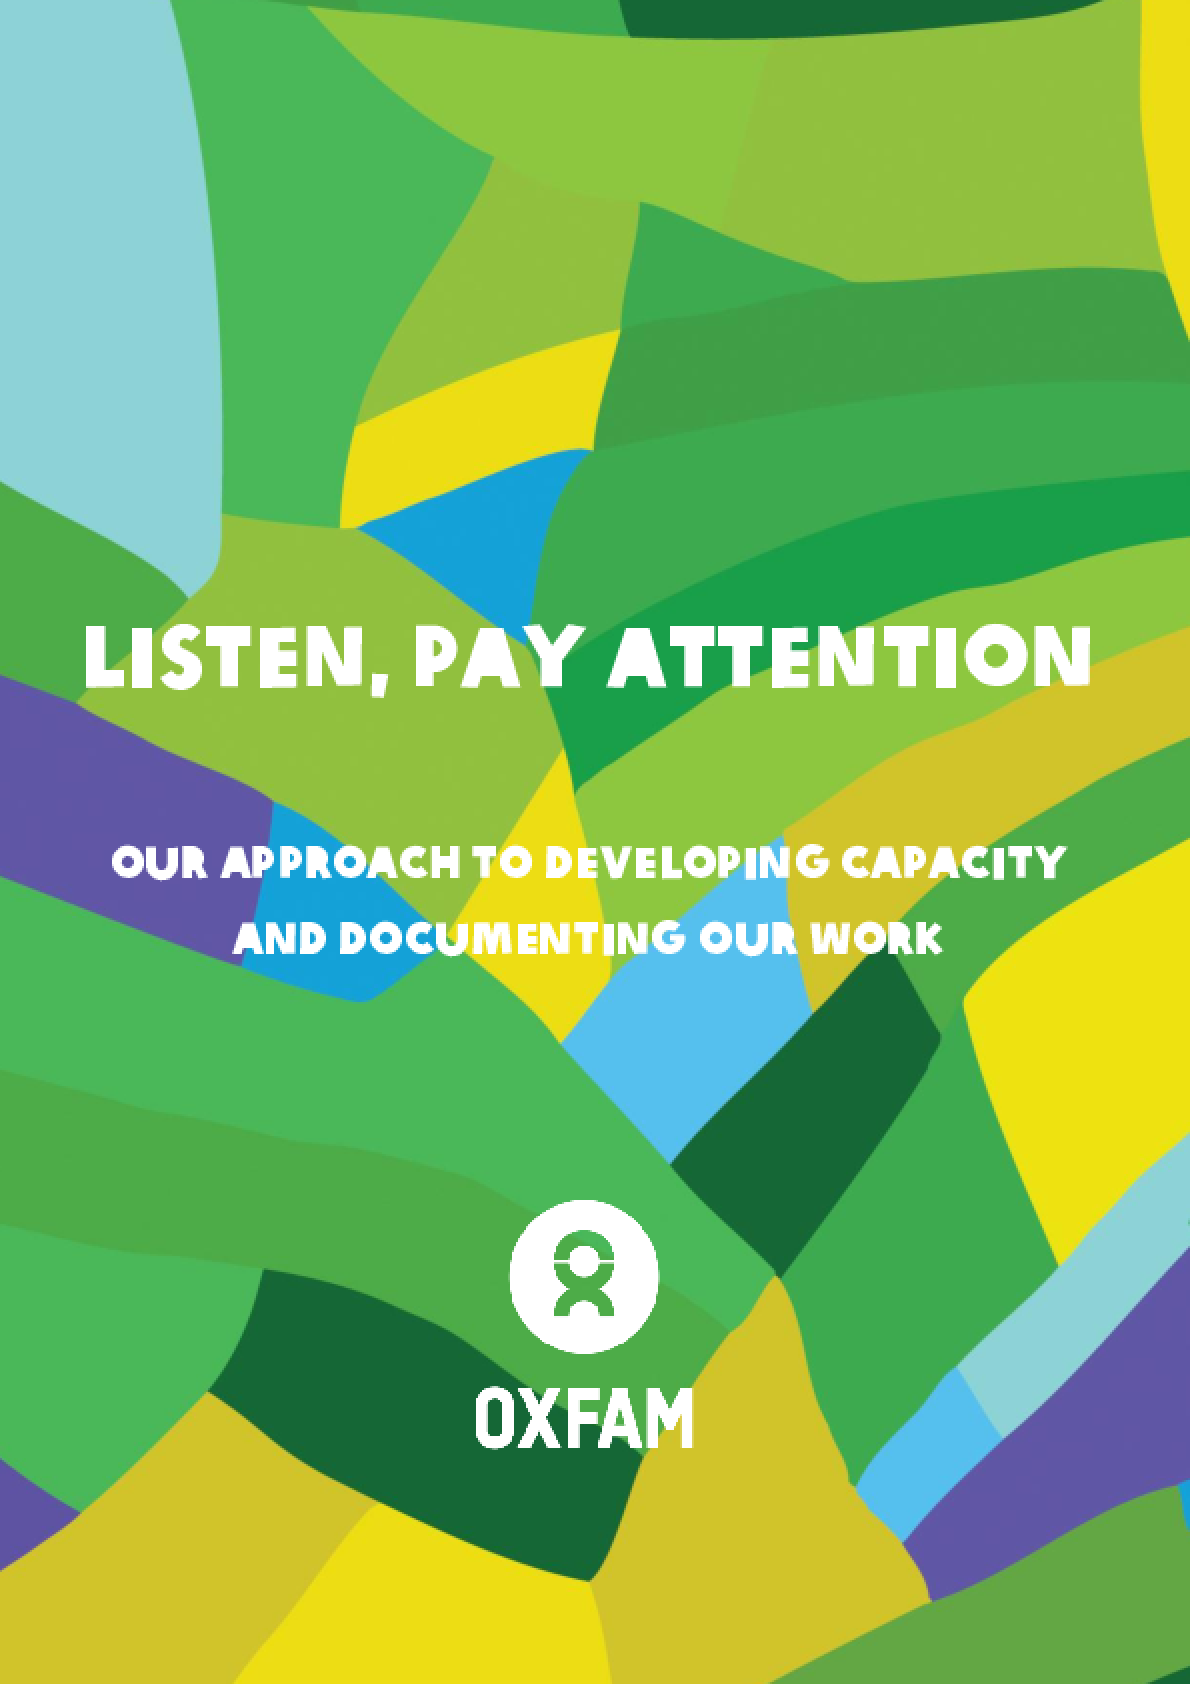 Listen, Pay Attention: Our approach to developing capacity and documenting our work